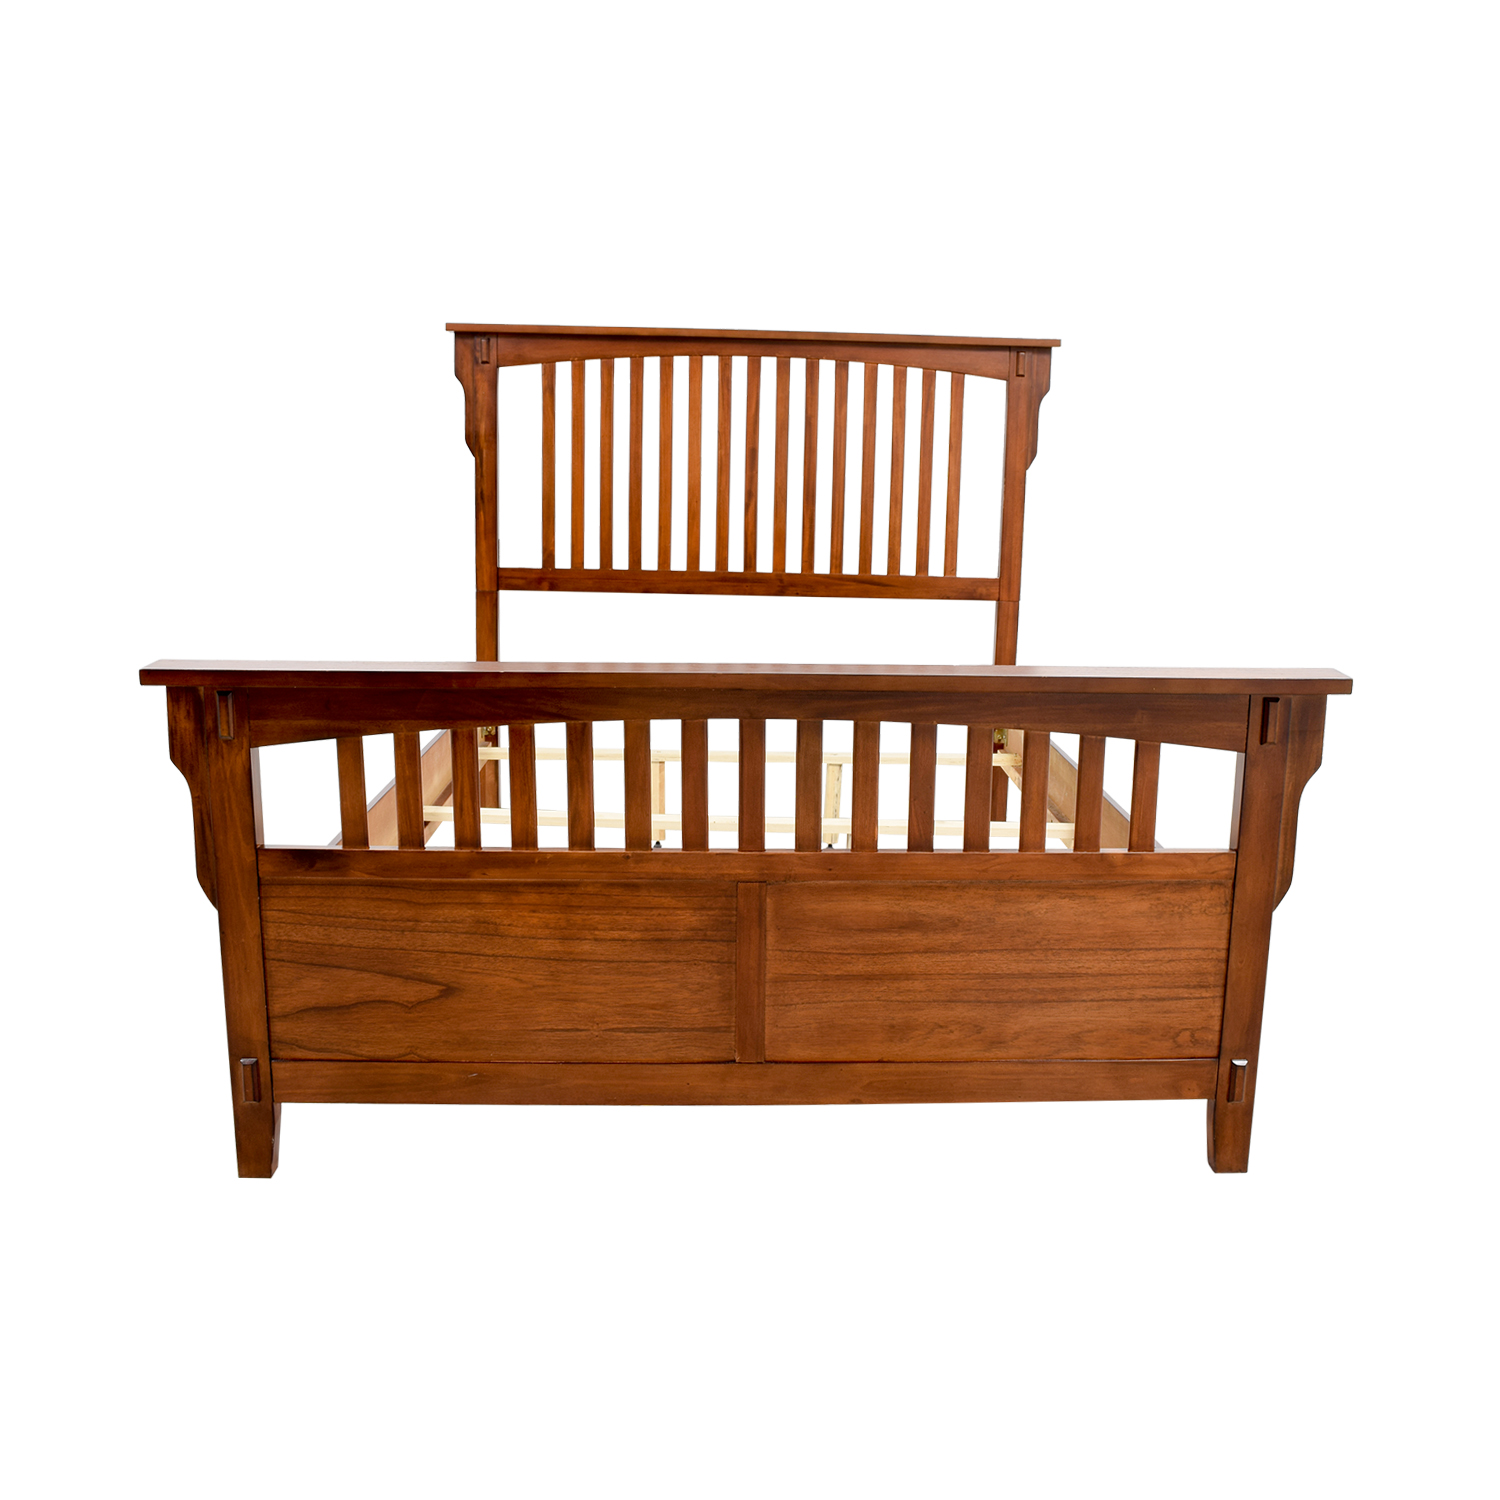 Caged Wooden Queen Bed Frame dimensions